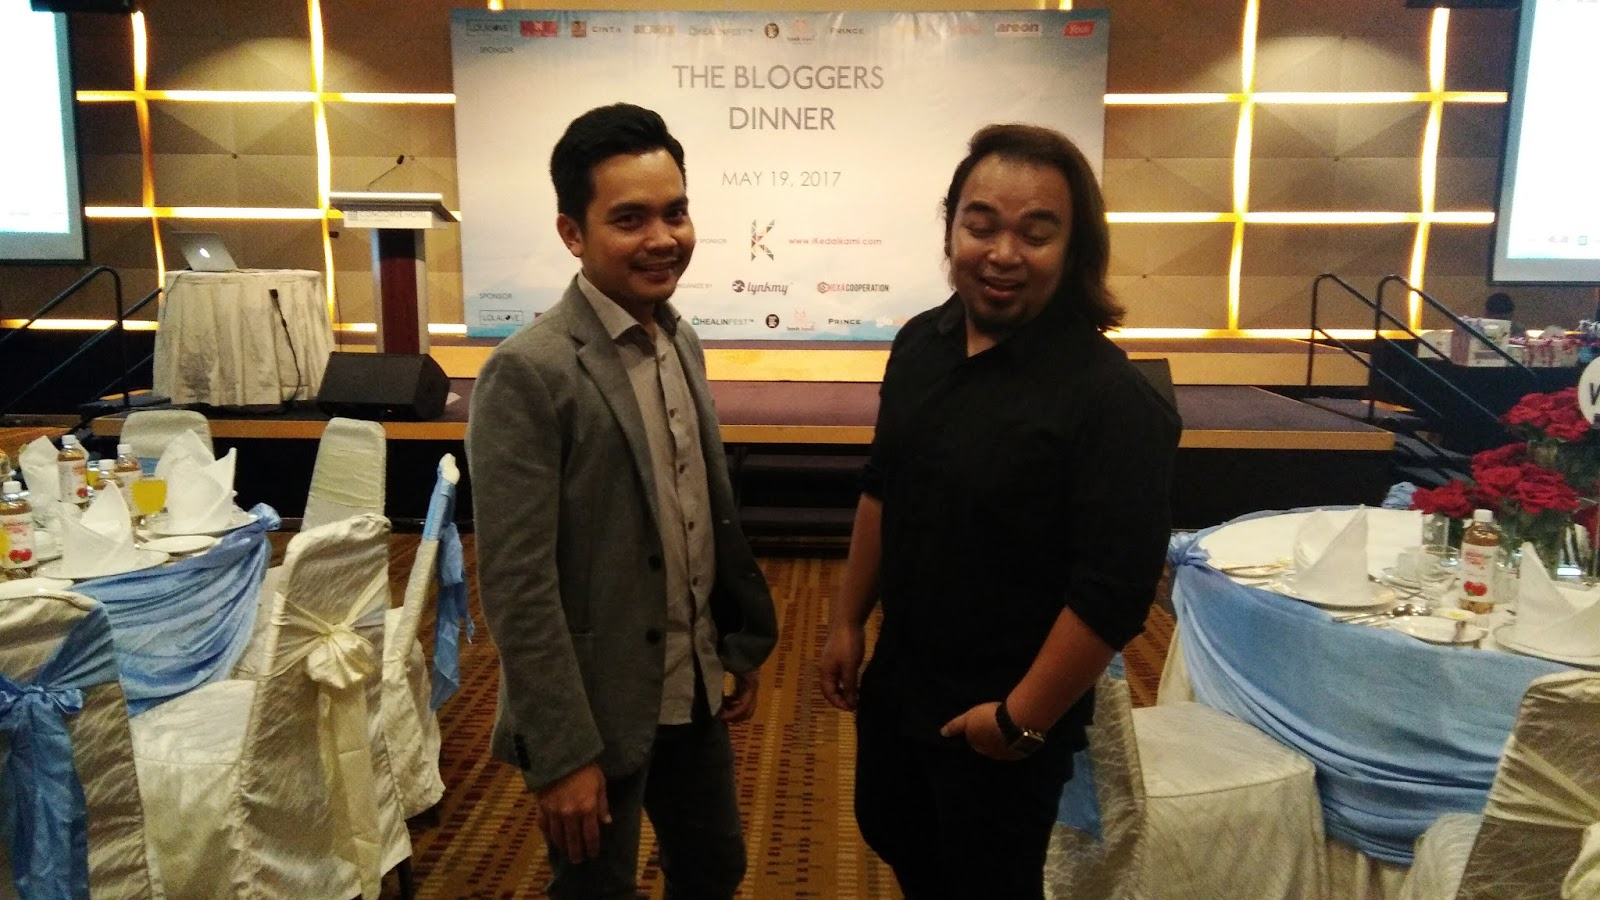 The Bloggers Dinner 2017